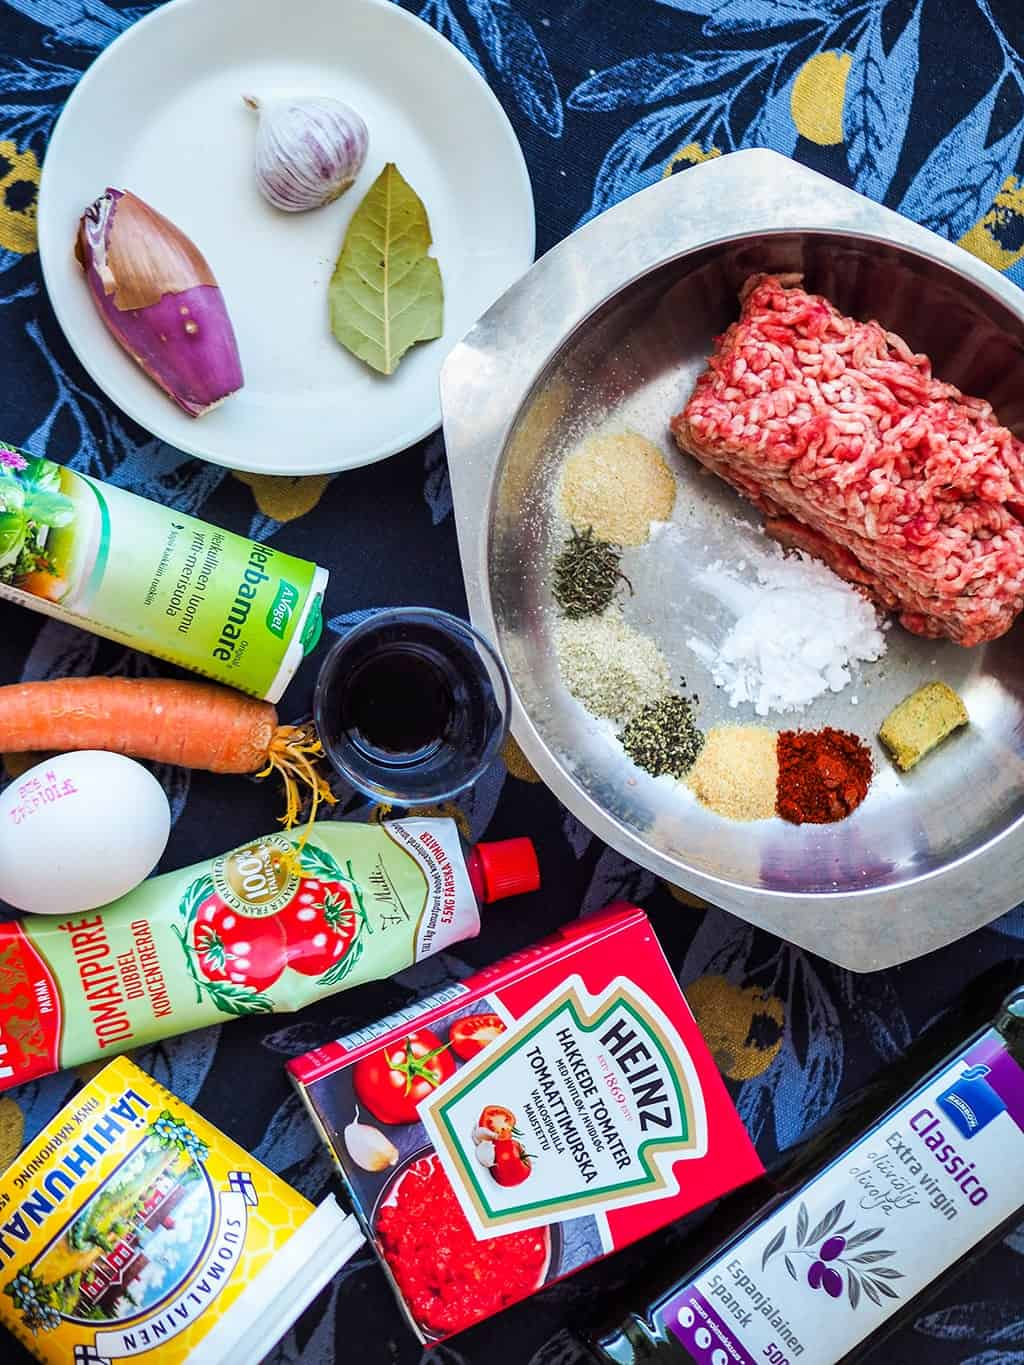 Ingredients for this gluten-free meatballs in tomato sauce recipe.